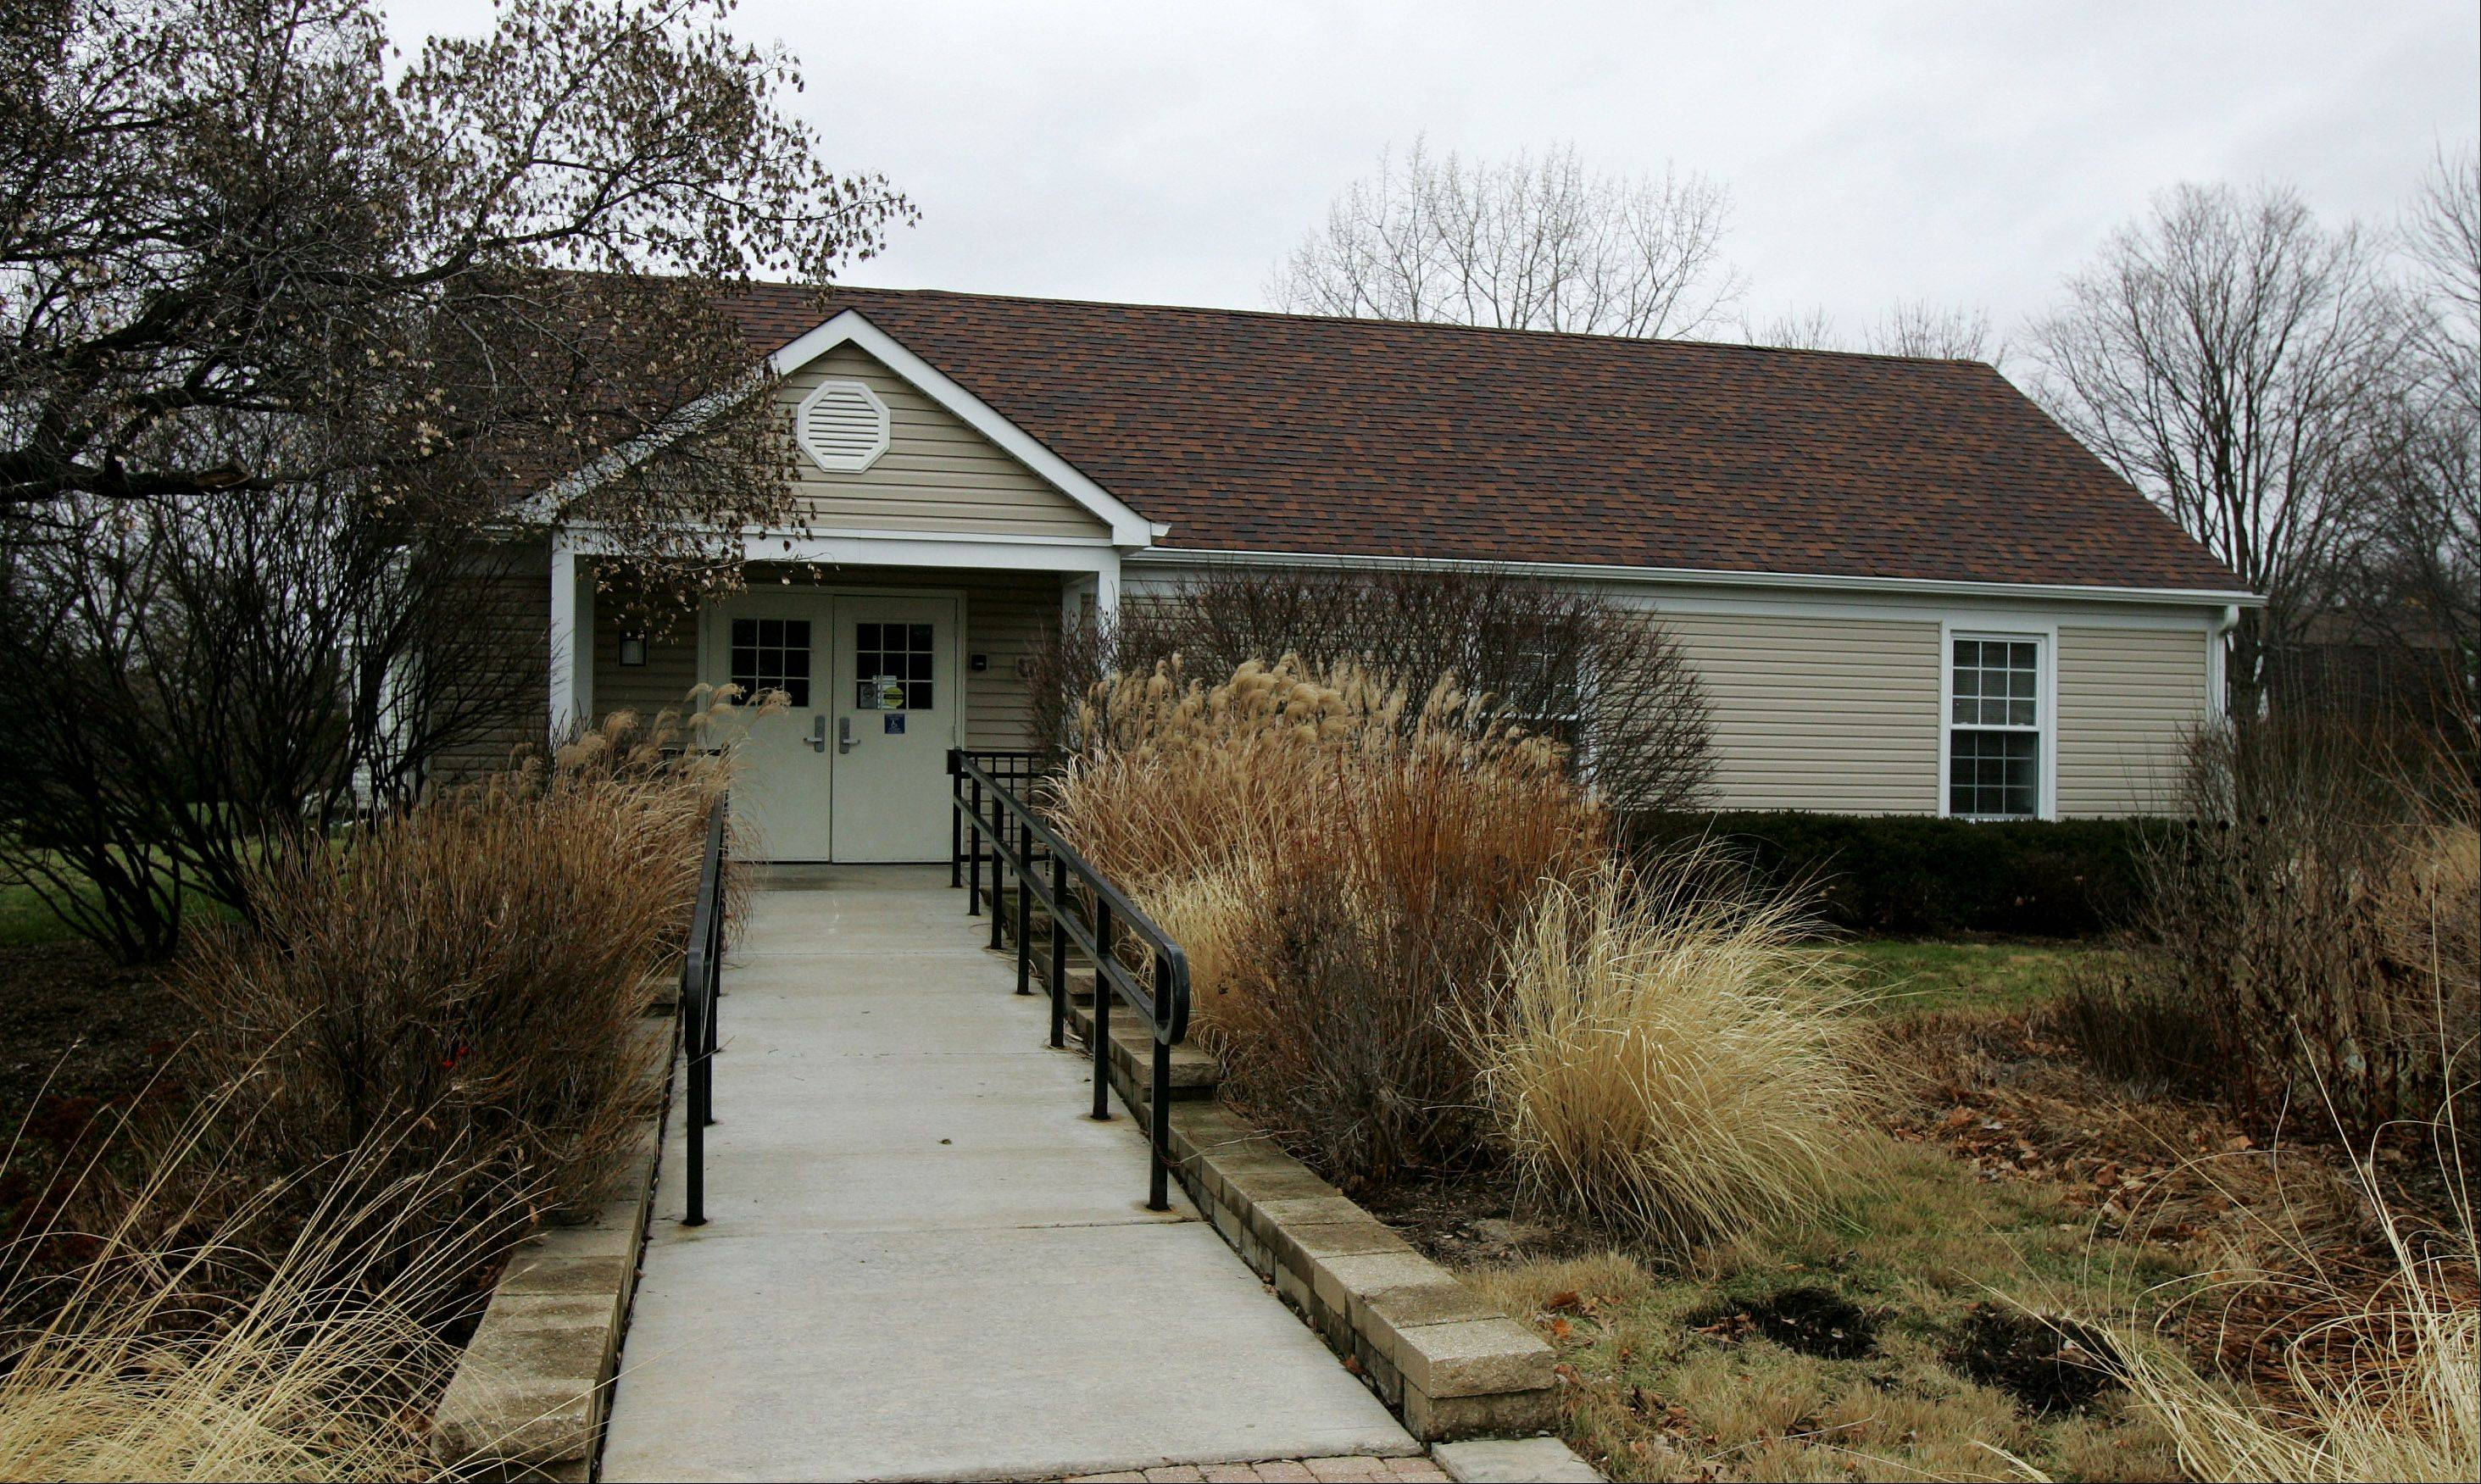 The Deerpath Center at 8 Greenvale Road has been sold by the Vernon Hills Park District for $95,000. The structure, originally built as a model home for the Deerpath subdivision, will be converted back into a residence.